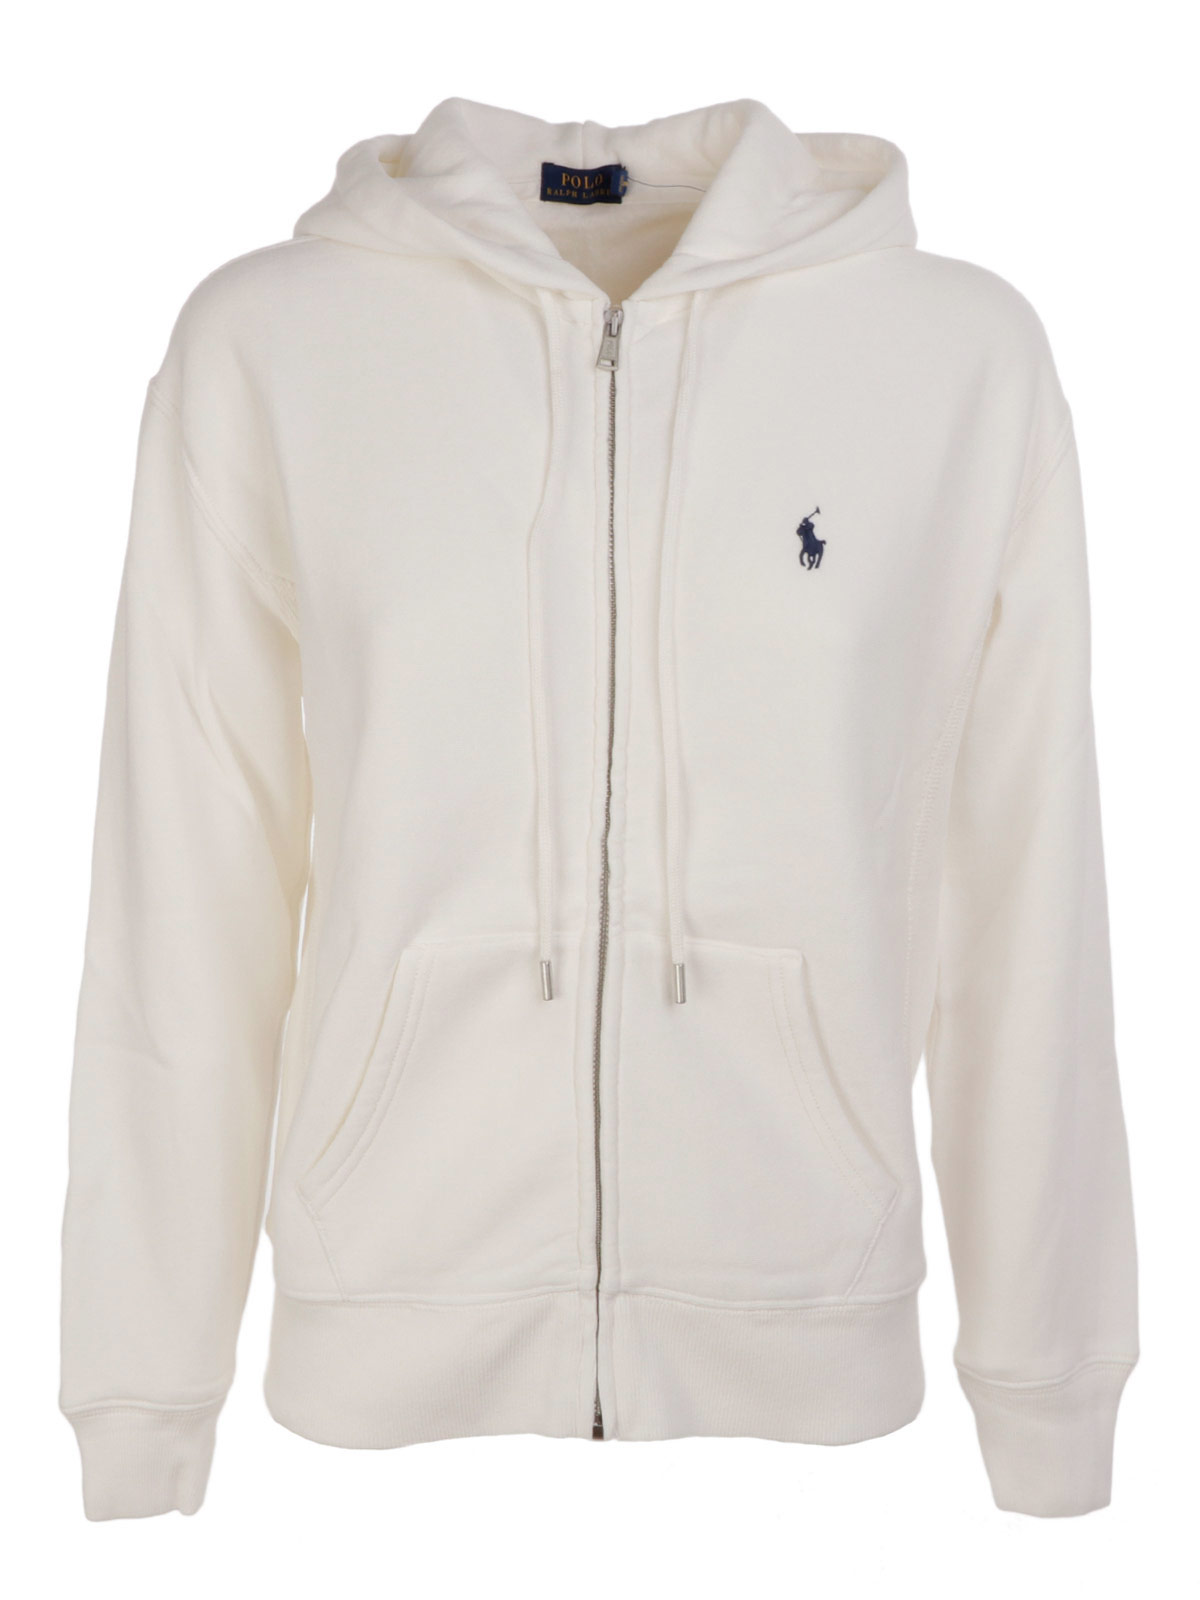 Picture of POLO RALPH LAUREN | Women's Hooded Sweatshirt